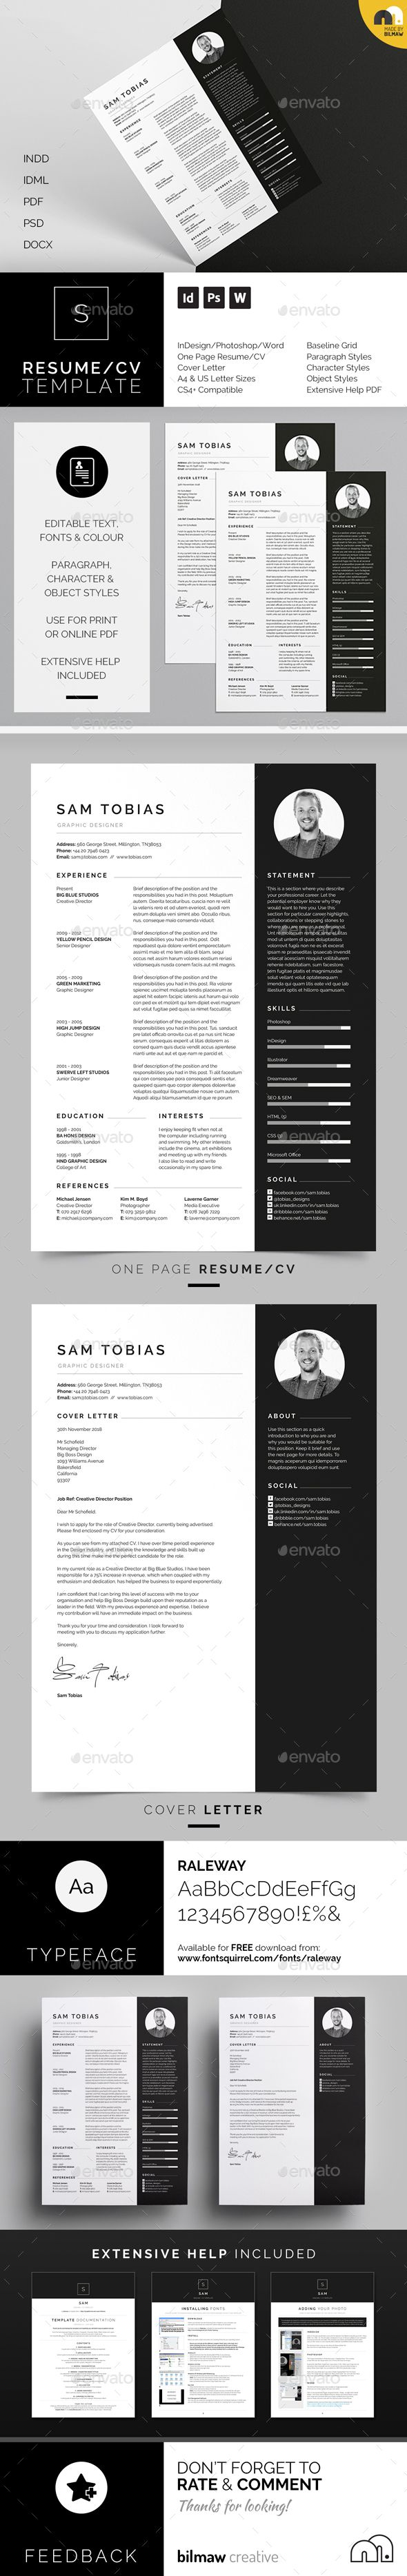 Best 20 Free Cover Letter Templates ideas on Pinterest  Simple cv template Modern resume and